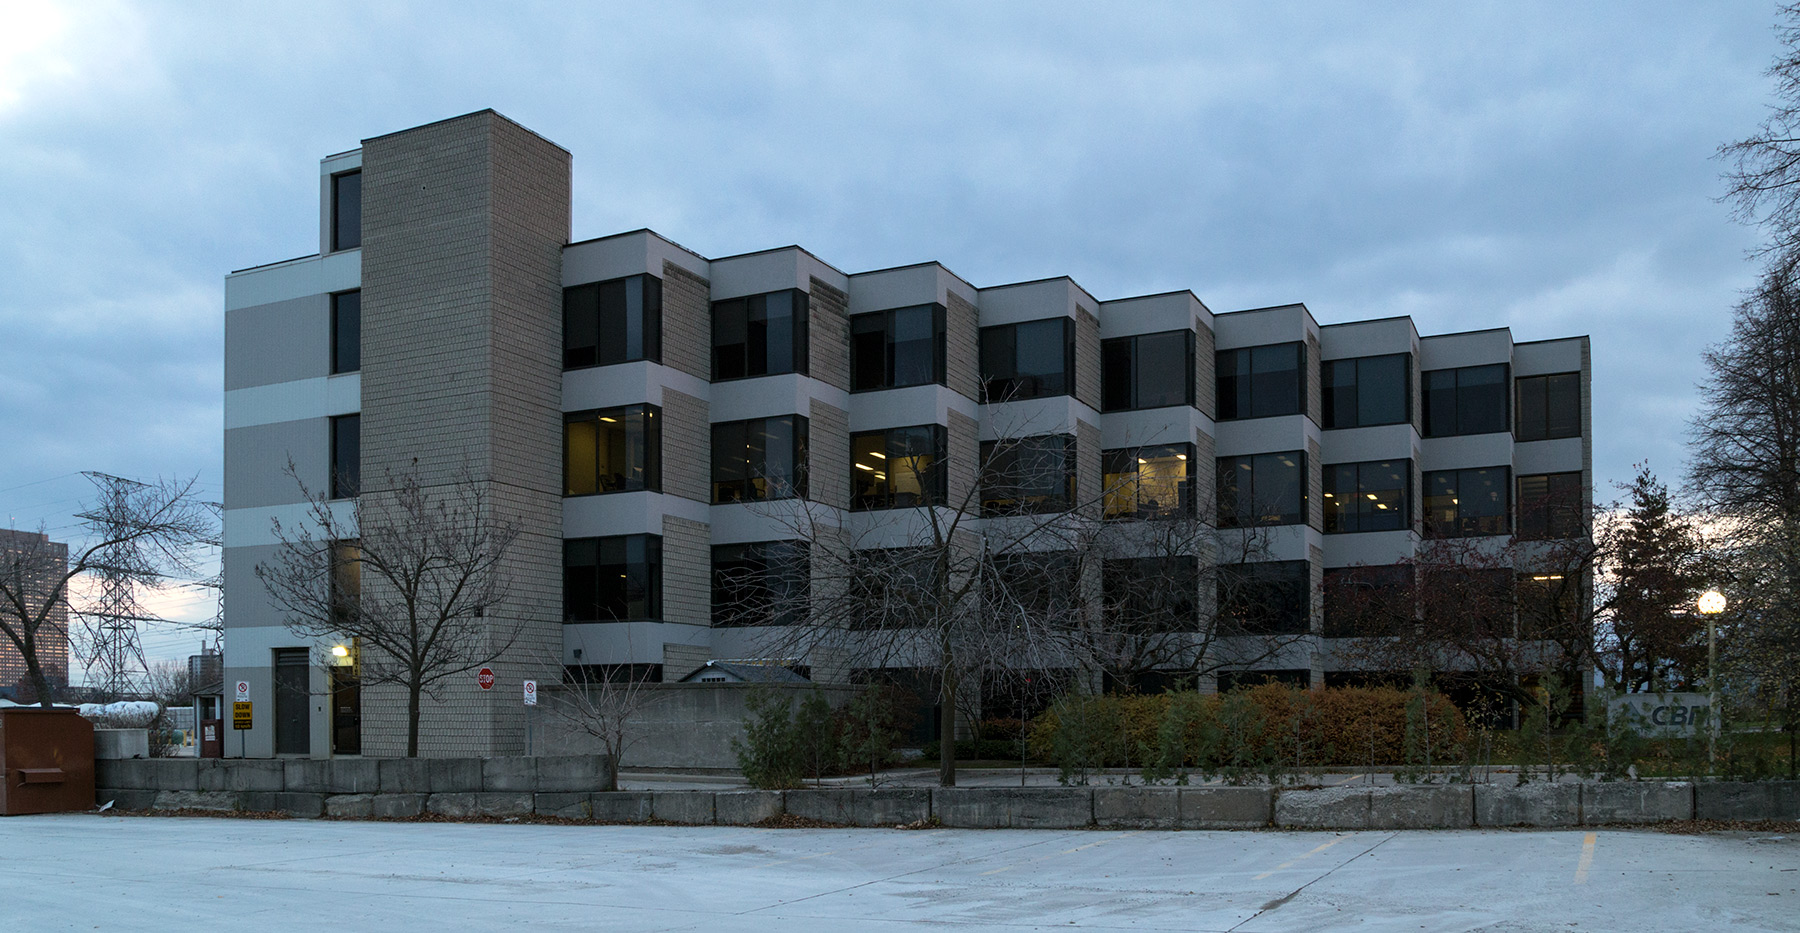 20141119. The St. Mary's Cement building in Leaside, Toronto was